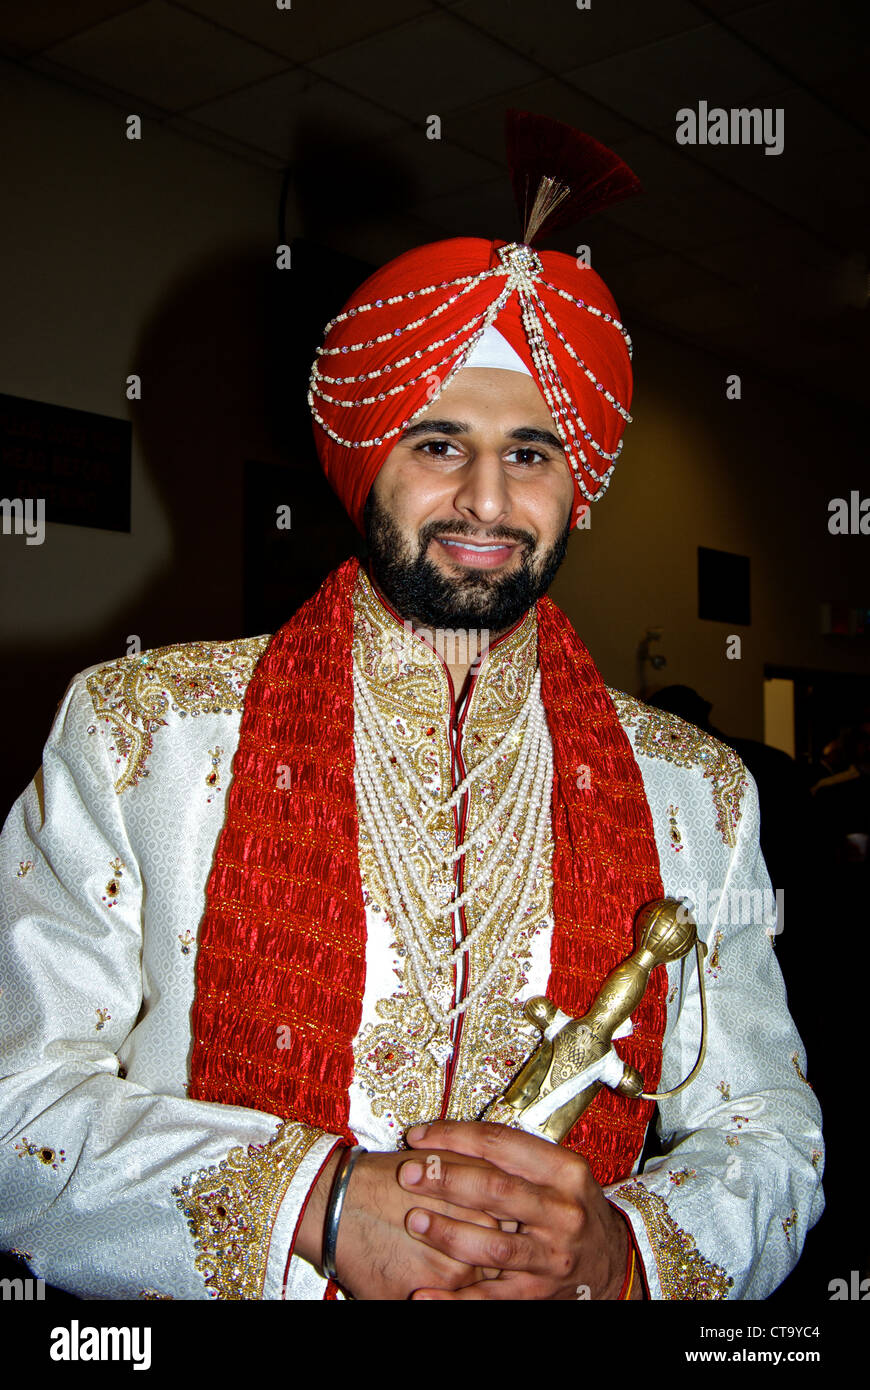 Traditional East Indian Wedding Groom Red Turban Special Pre Ceremony Head Dress Beaded Decorations White Robes Pearls Scarf